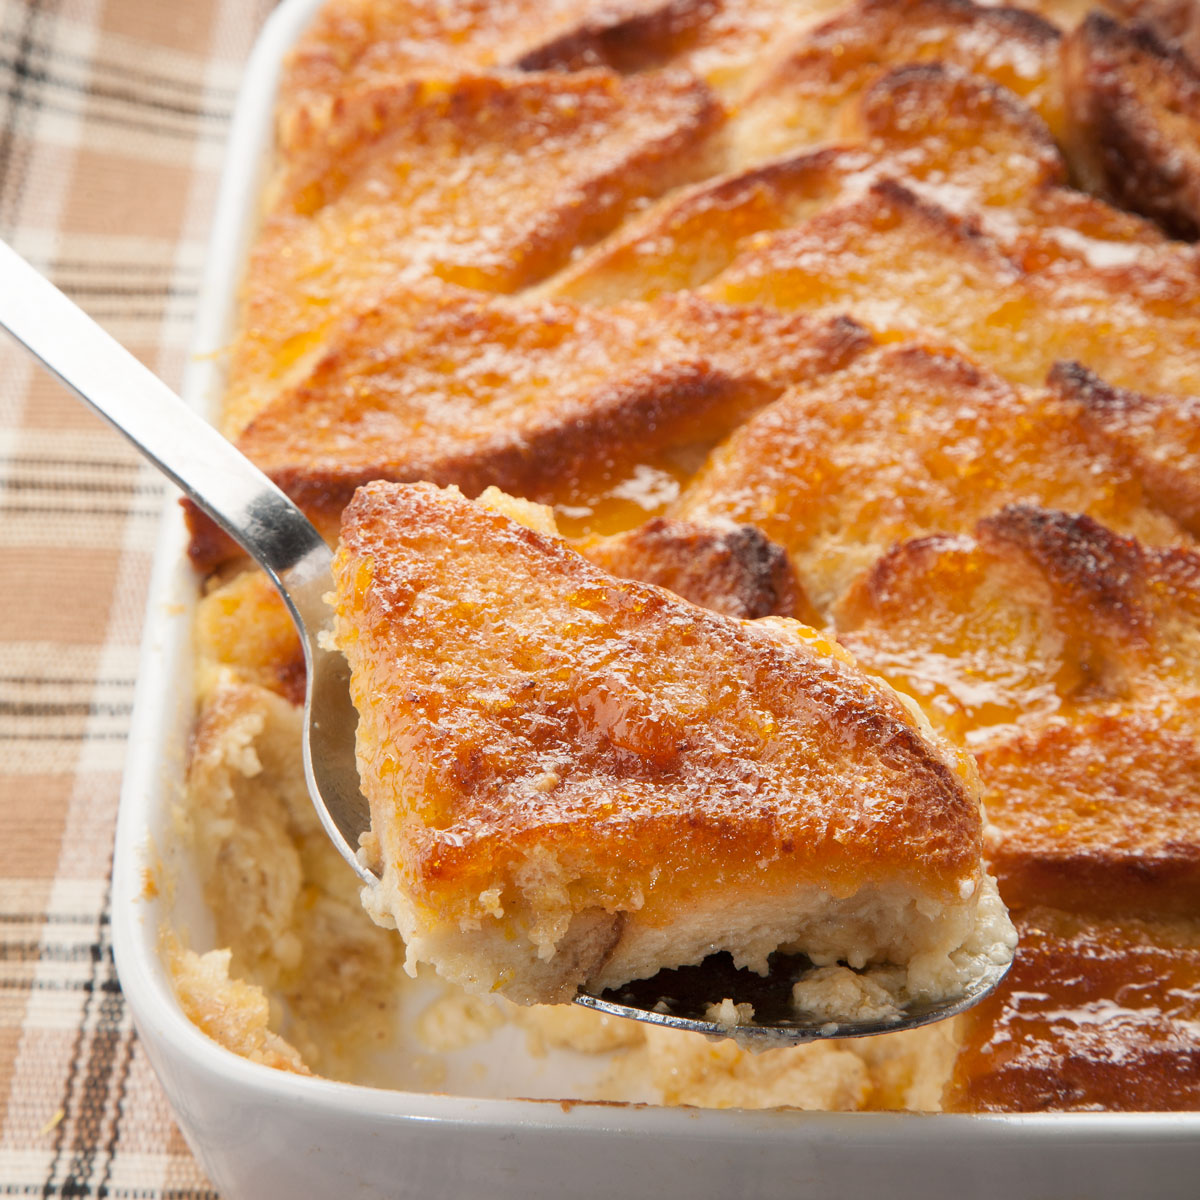 Bread and butter pudding - home cooked food delivered.